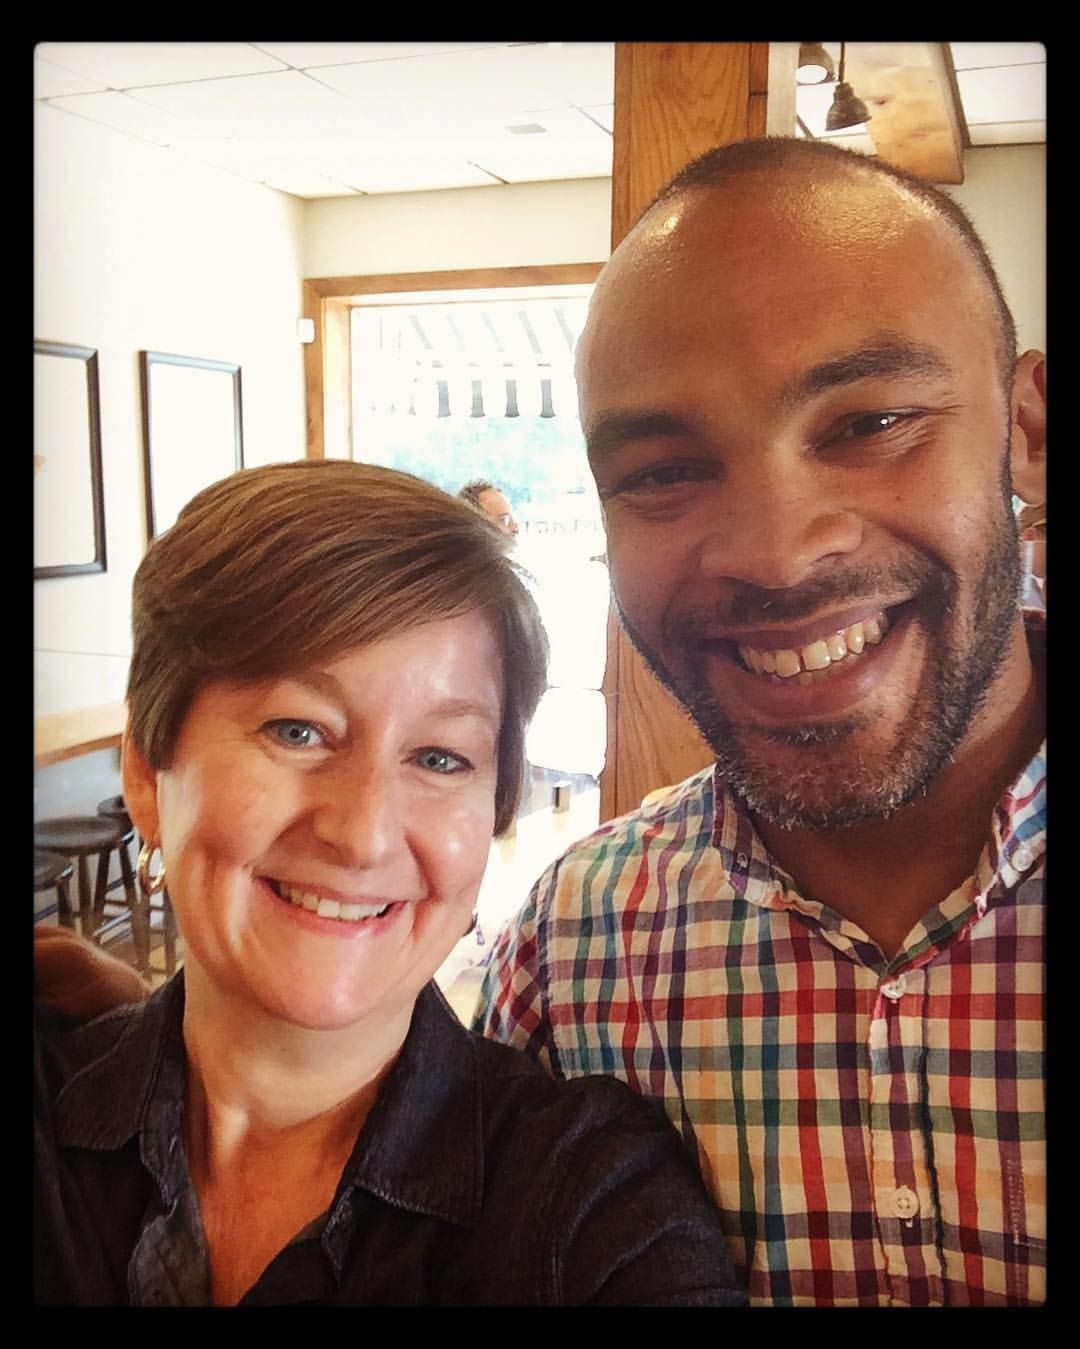 """New episode! Learn how MarieBette Café & Bakery made the """"Bronut"""" famous in my talk w/Jason Becton. #Cville #food"""